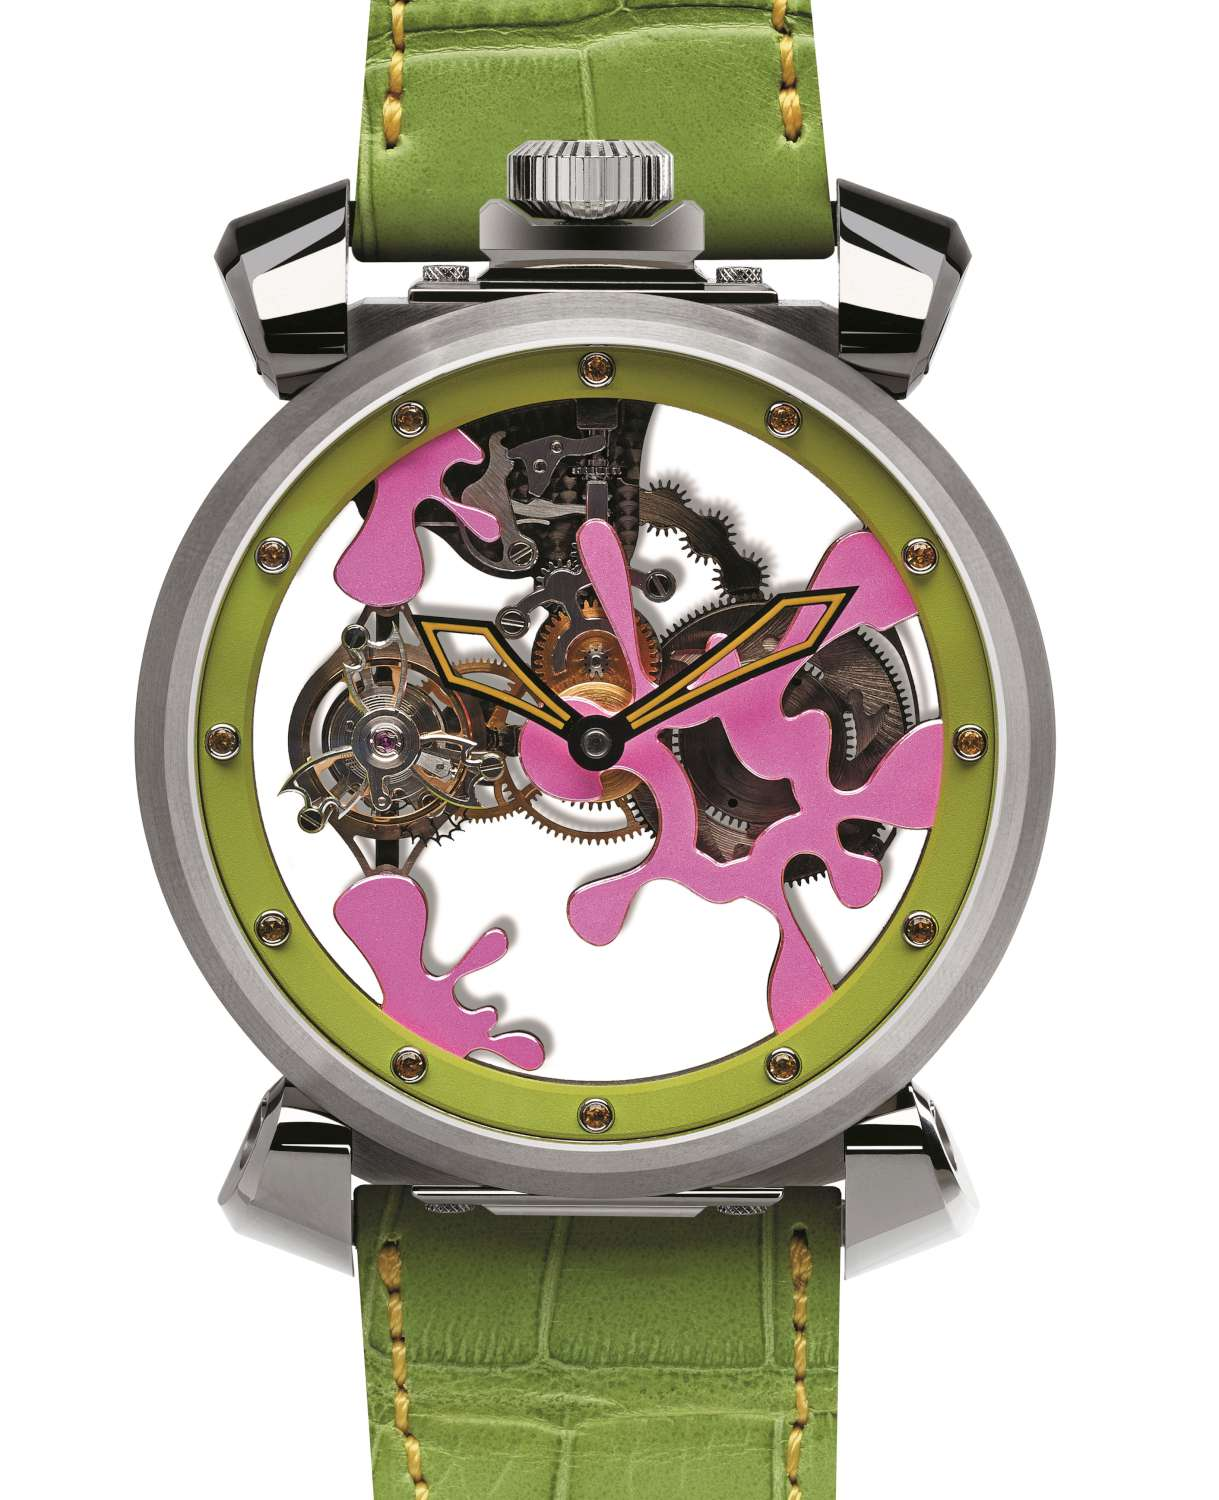 low_GREEN WATCHnew-1500